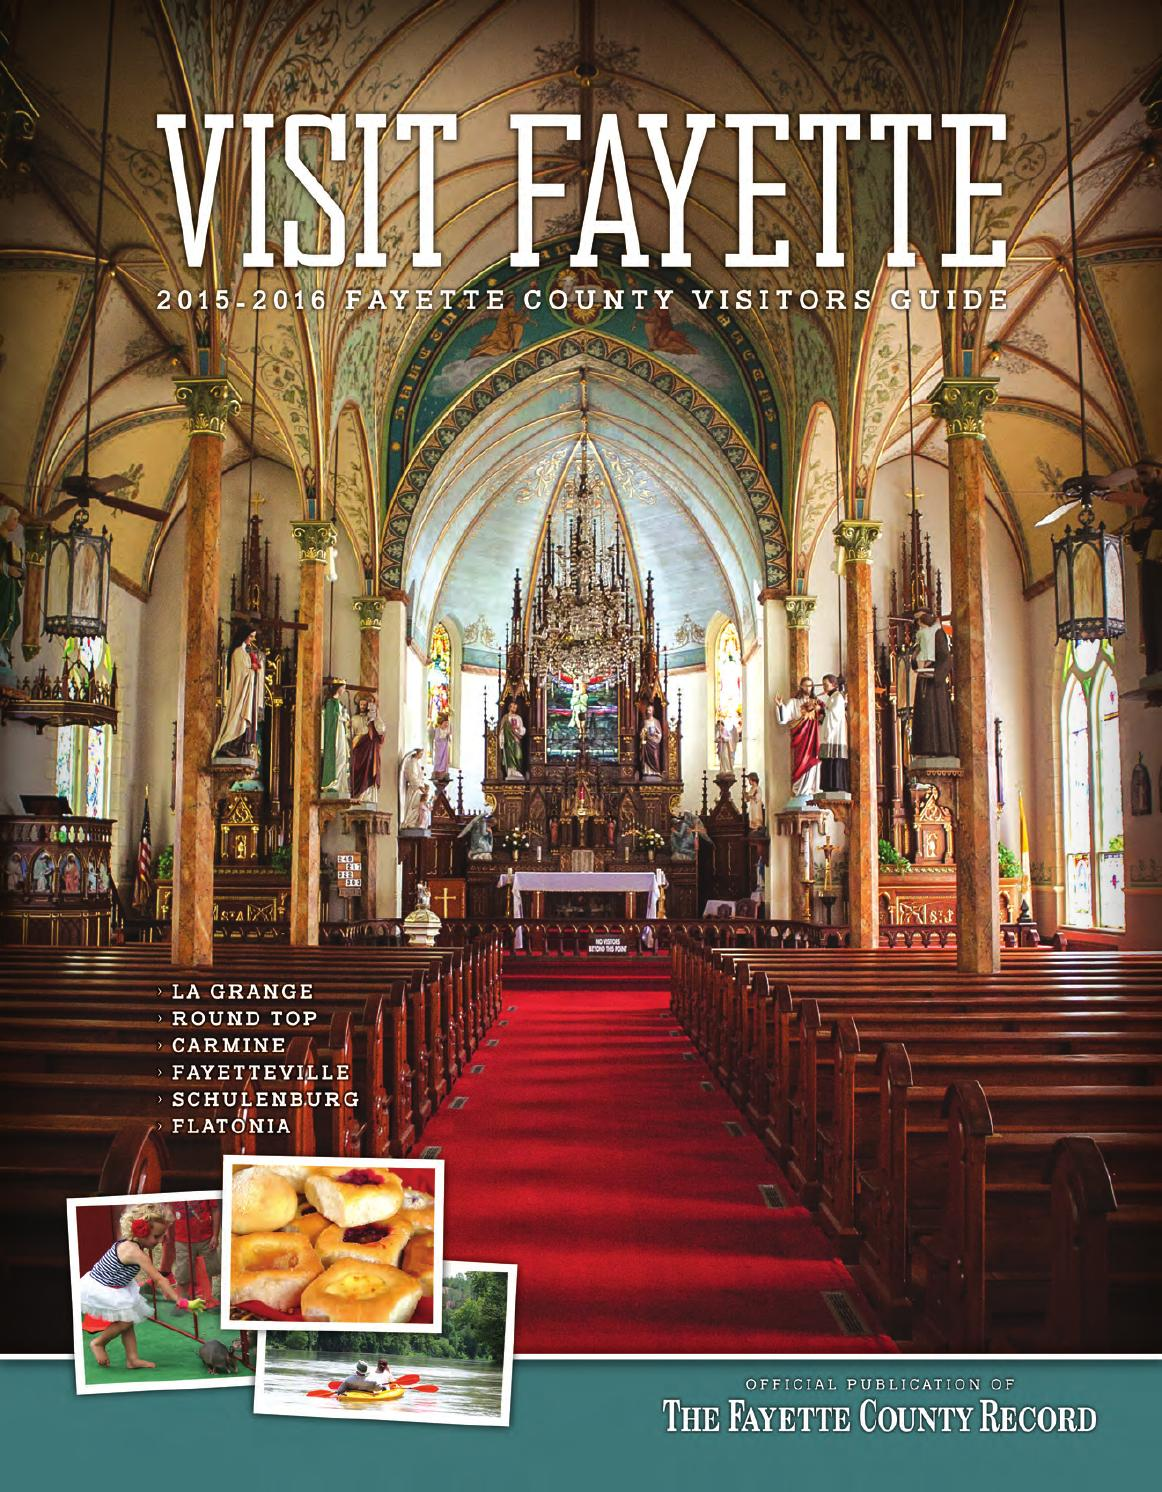 Haus Design Weltner 2015 Fayette County Record Visitors Guide